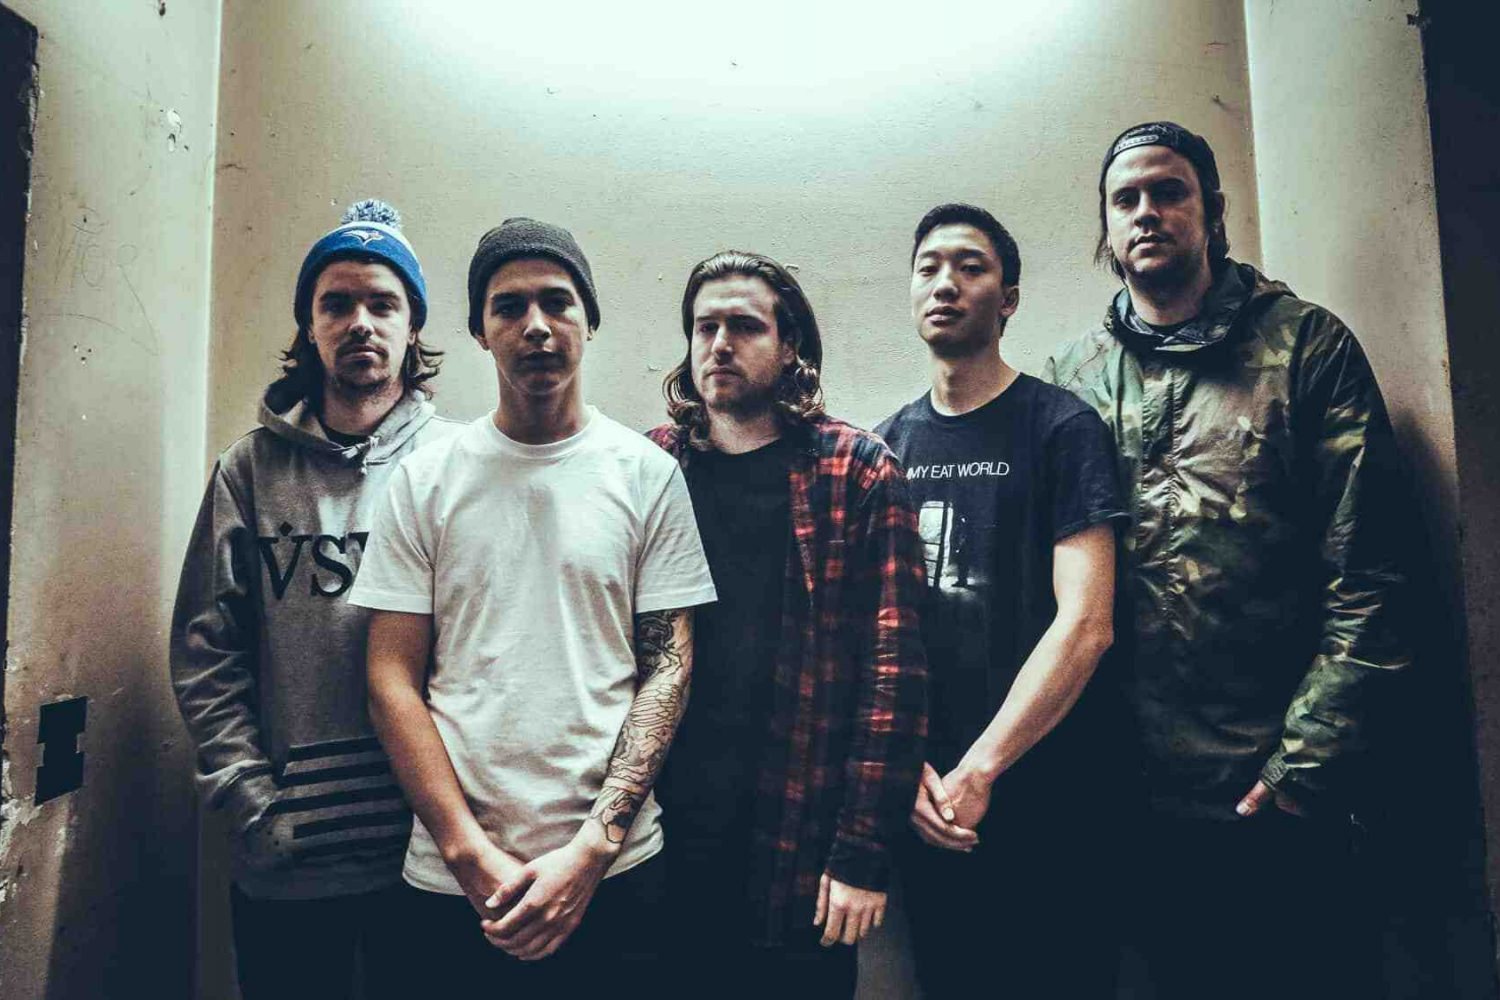 Counterparts and Stick To Your Guns have announced a joint UK tour